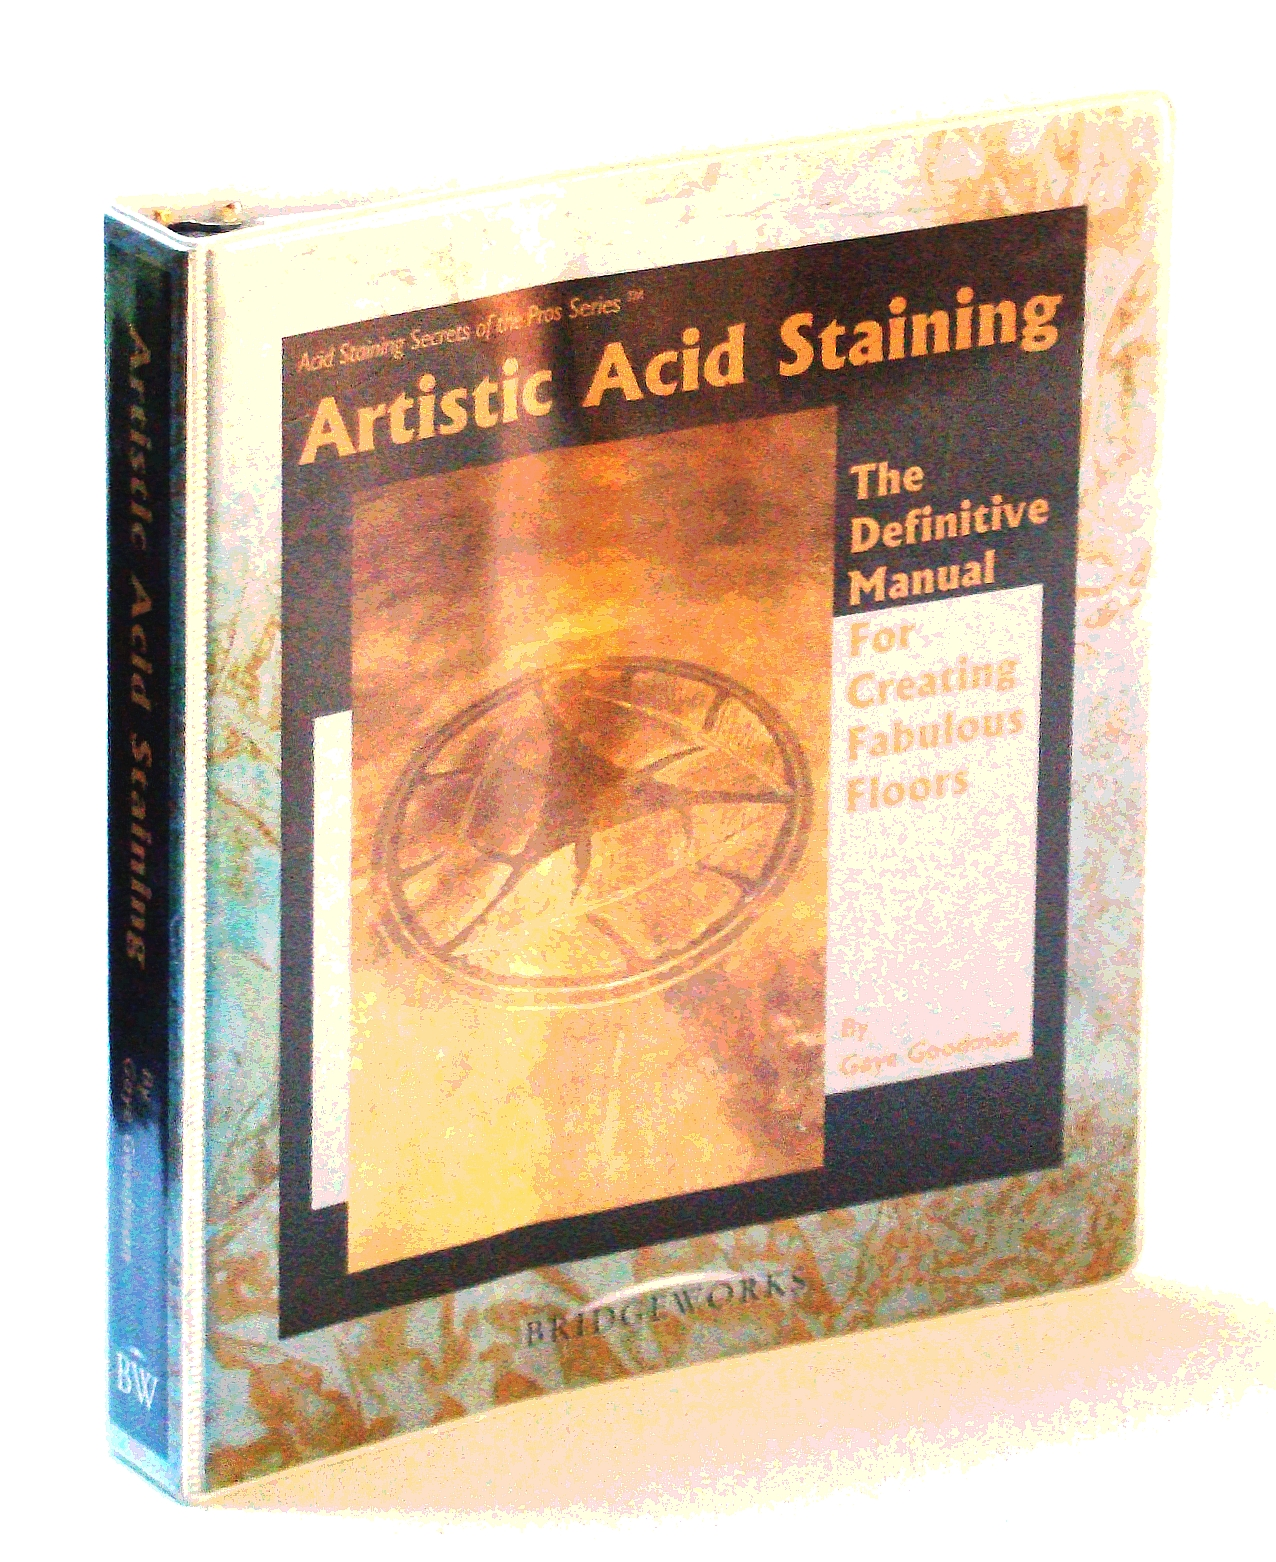 Image for Artistic Acid Staining: The Definitive Manual For Creating Fabulous Floors (Acid Staining Secrets of the Pros Series)